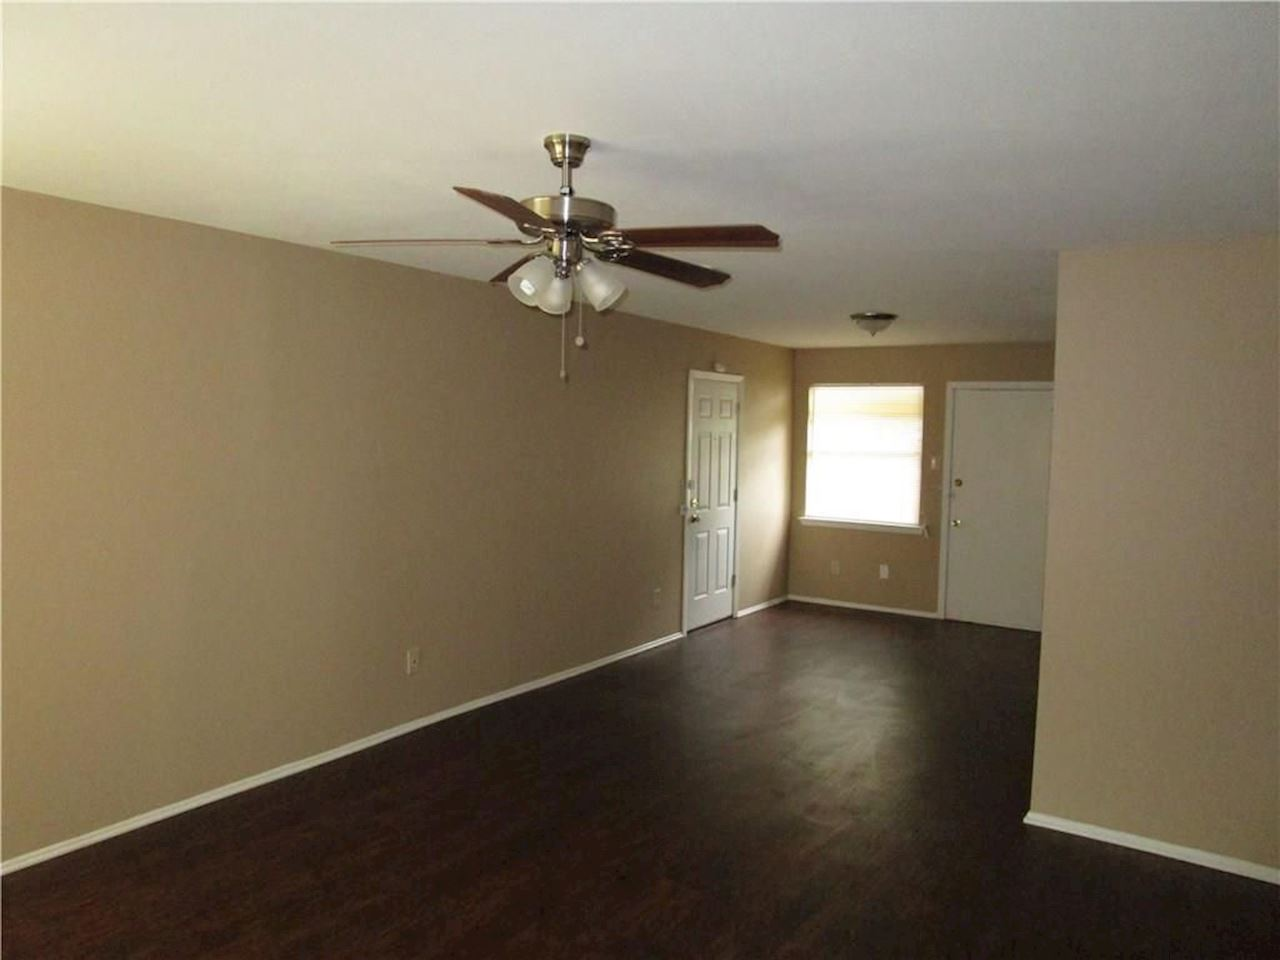 investment property - 547 Meadowshire Dr, Dallas, TX 75232, Dallas - image 2